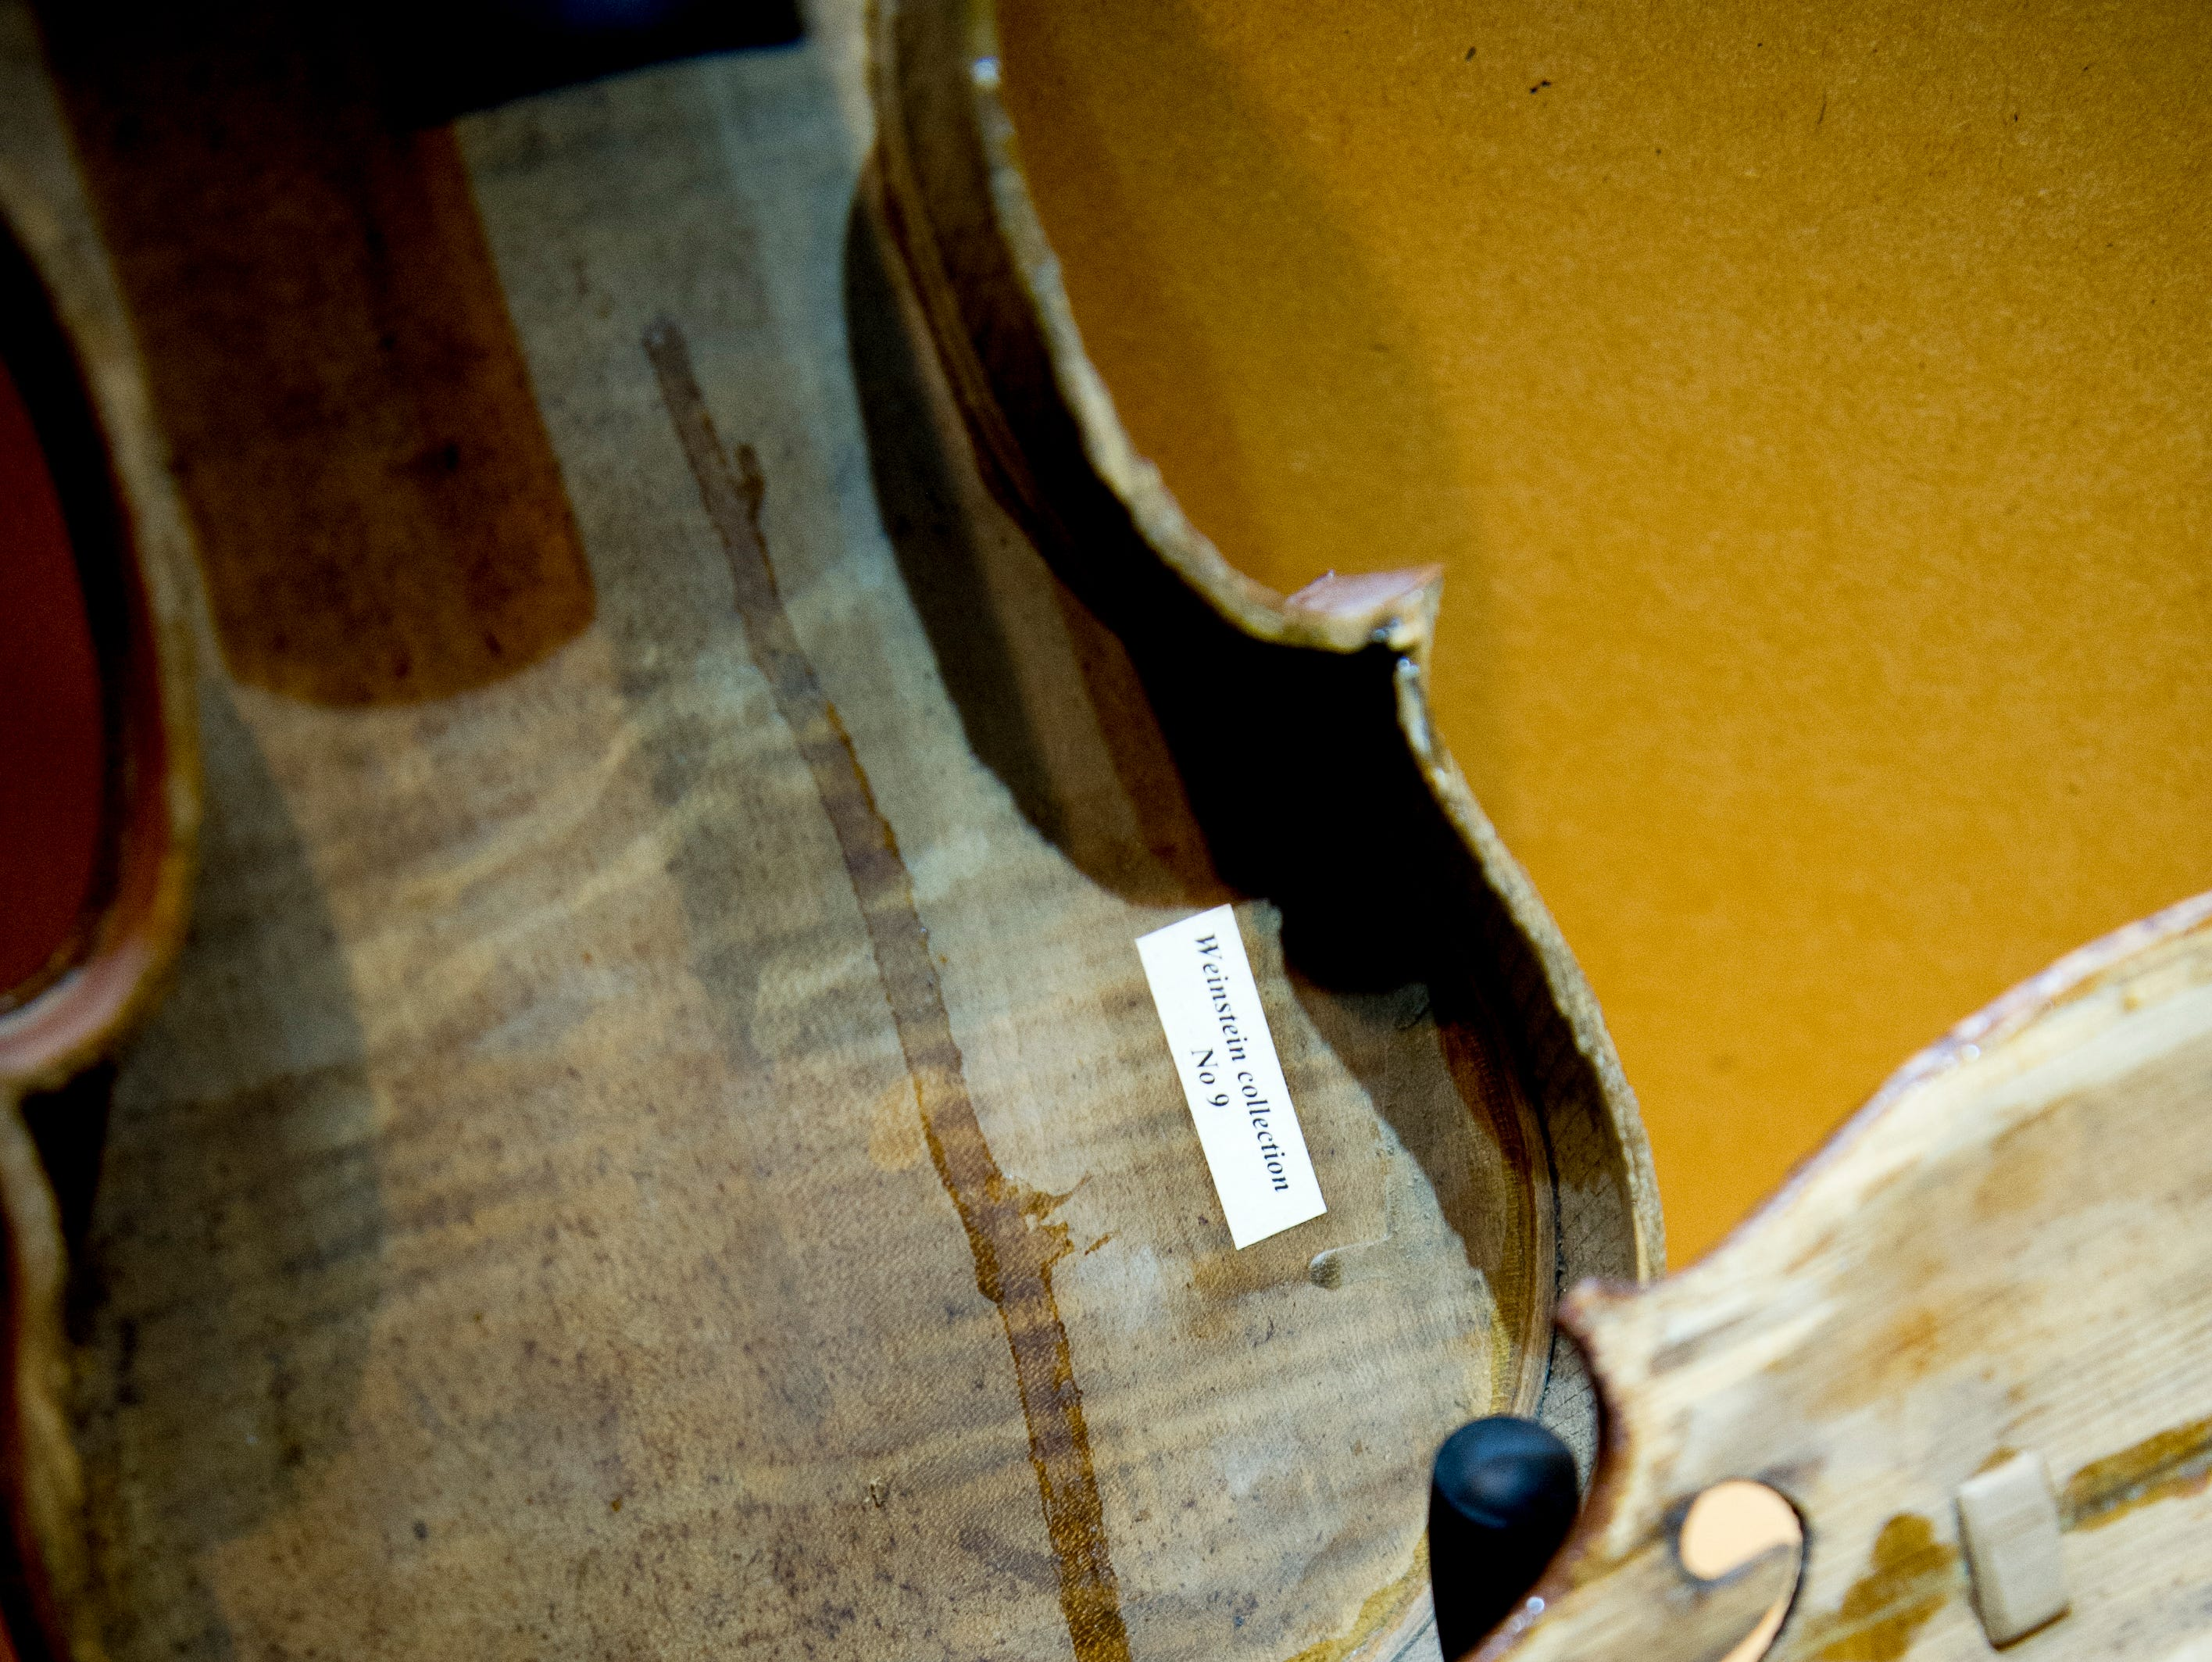 """An unrepaired violin is on display at the """"Violins of Hope"""" exhibit at the University of Tennessee Downtown Gallery, 106 S. Gay St., in Knoxville on Jan. 4, 2019."""